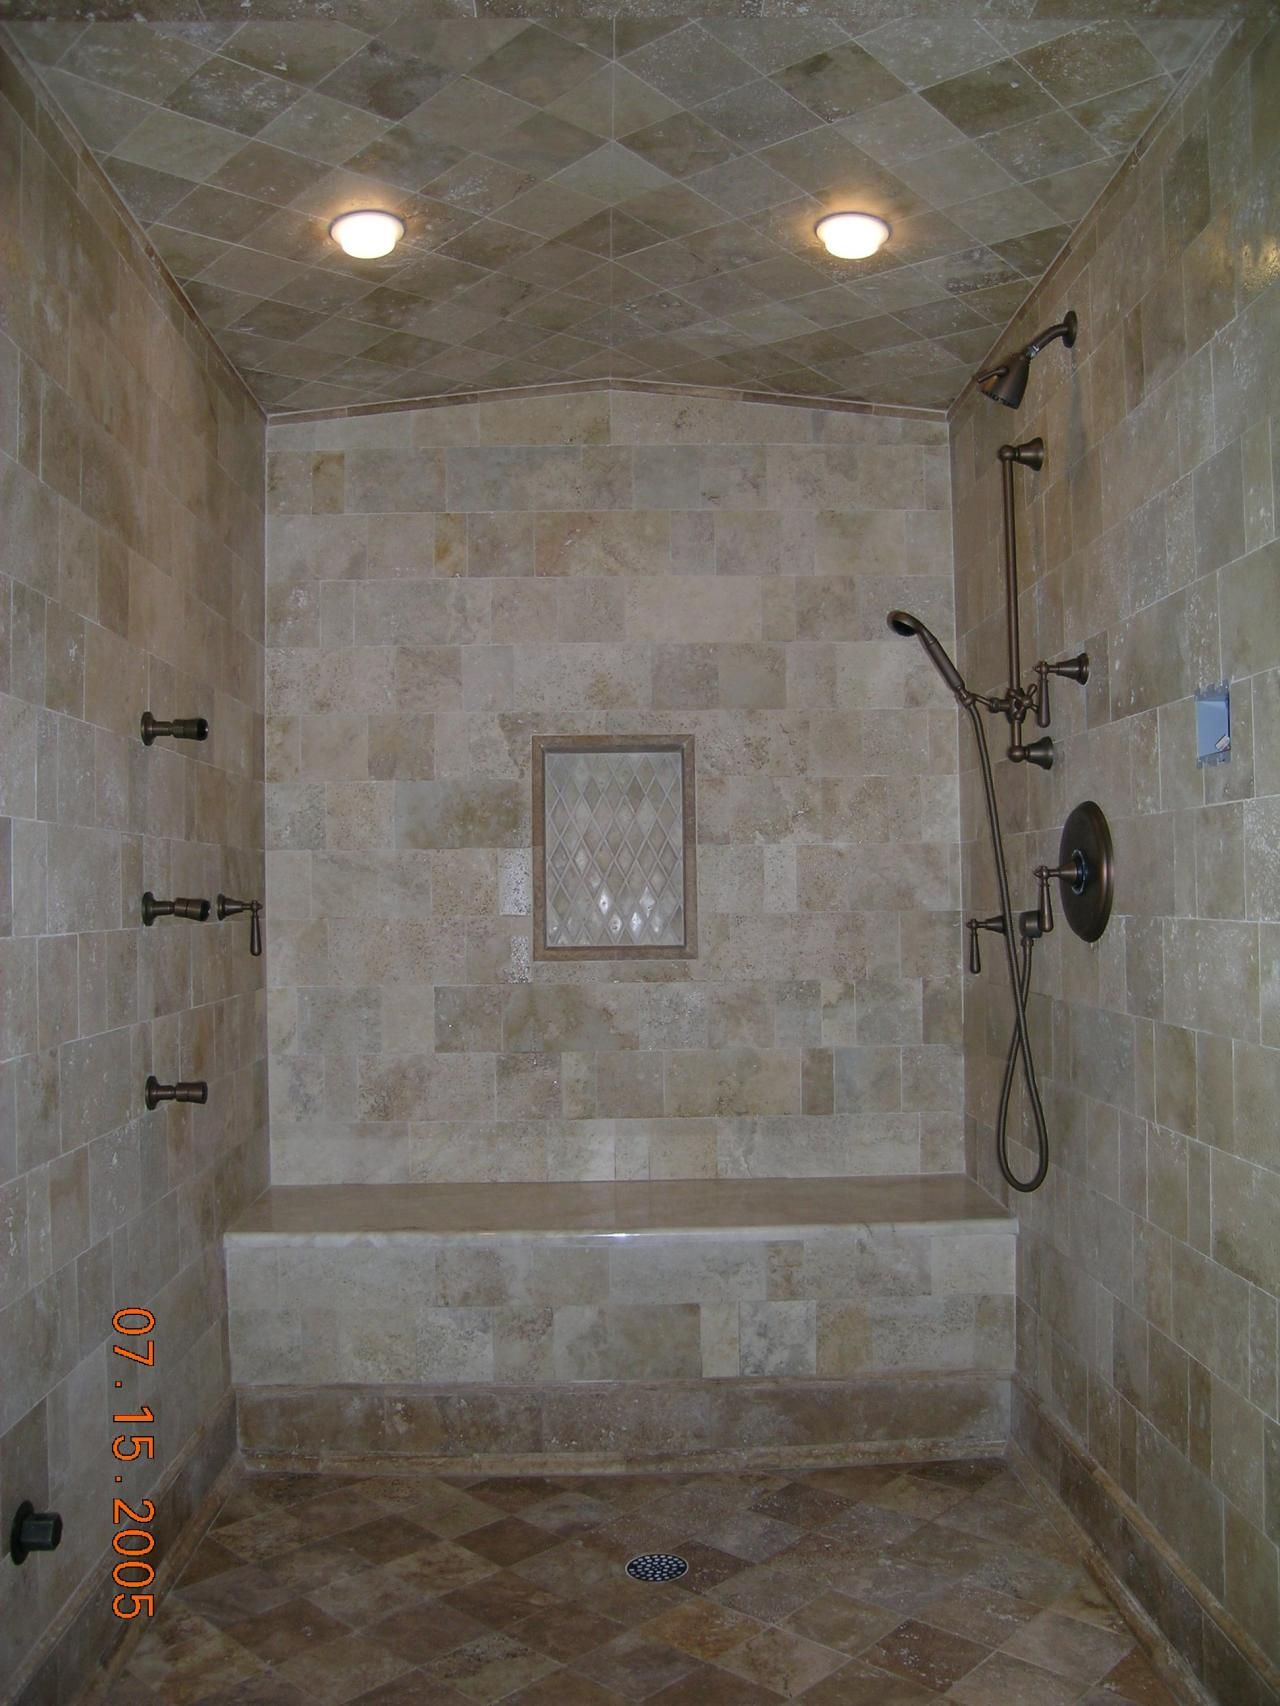 Shower tile images antiqued marble steam shower with diagonal shower tile images antiqued marble steam shower with diagonal pitched shower ceiling dailygadgetfo Choice Image